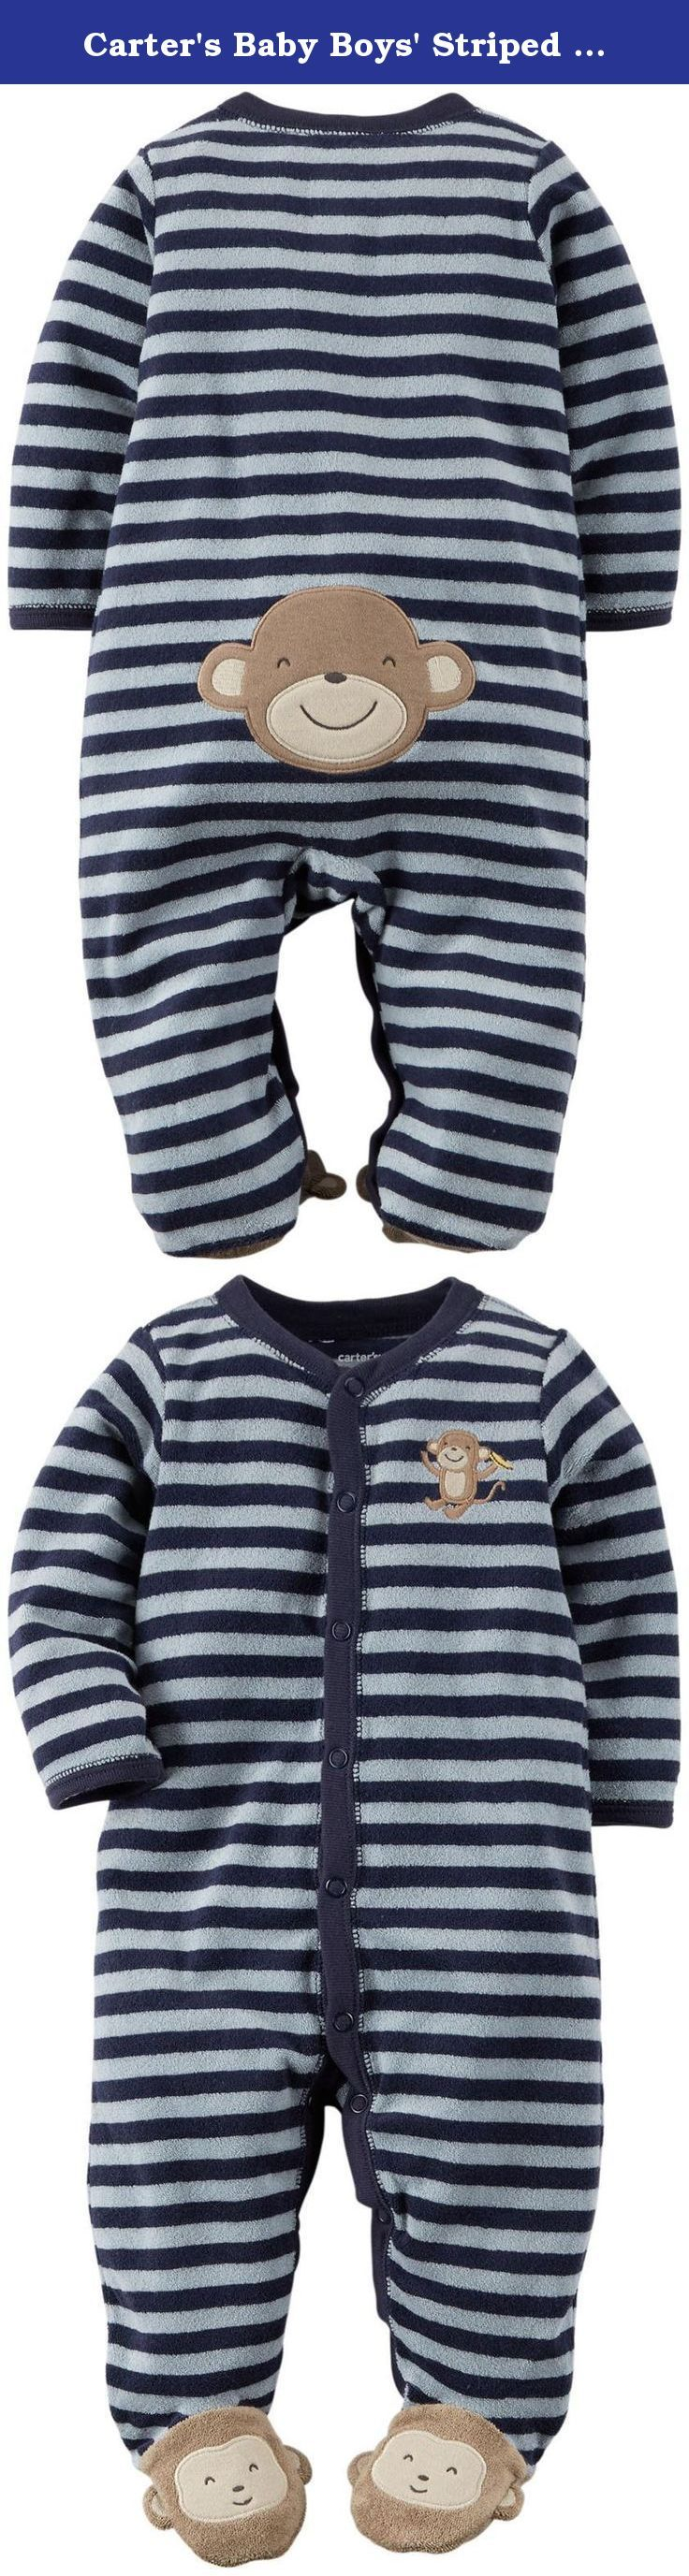 Carter's Baby Boys' Striped Terry Footie (Baby) - Monkey - 9 Months. Carters Striped Terry Footie Baby Monkey Carters is the leading brand of childrens clothing gifts and accessories in America selling more than 10 products for every child born in the U.S. Their designs are based on a heritage of quality and innovation that has earned them the trust of generations of families. Features: ul Snaps from ankle to chin. Nickel free snaps on reinforced panel. Monkey applique & footies. /ul.